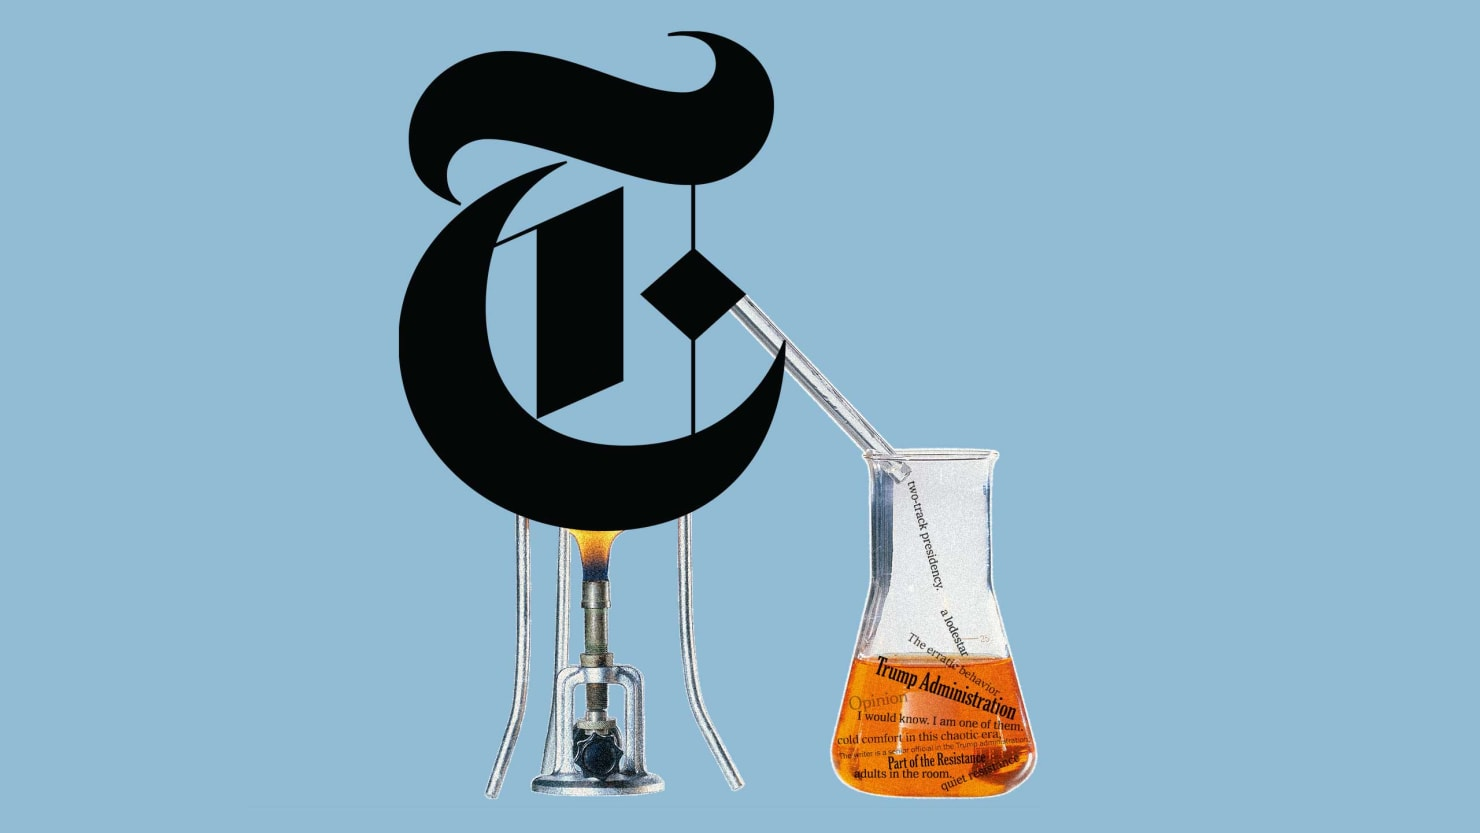 new york times nytimes nyt op ed anonymous lodestar senior trump official science linguistics forensic linguist unabomber ted kaczynski mortez dehghani machine learning tf idf